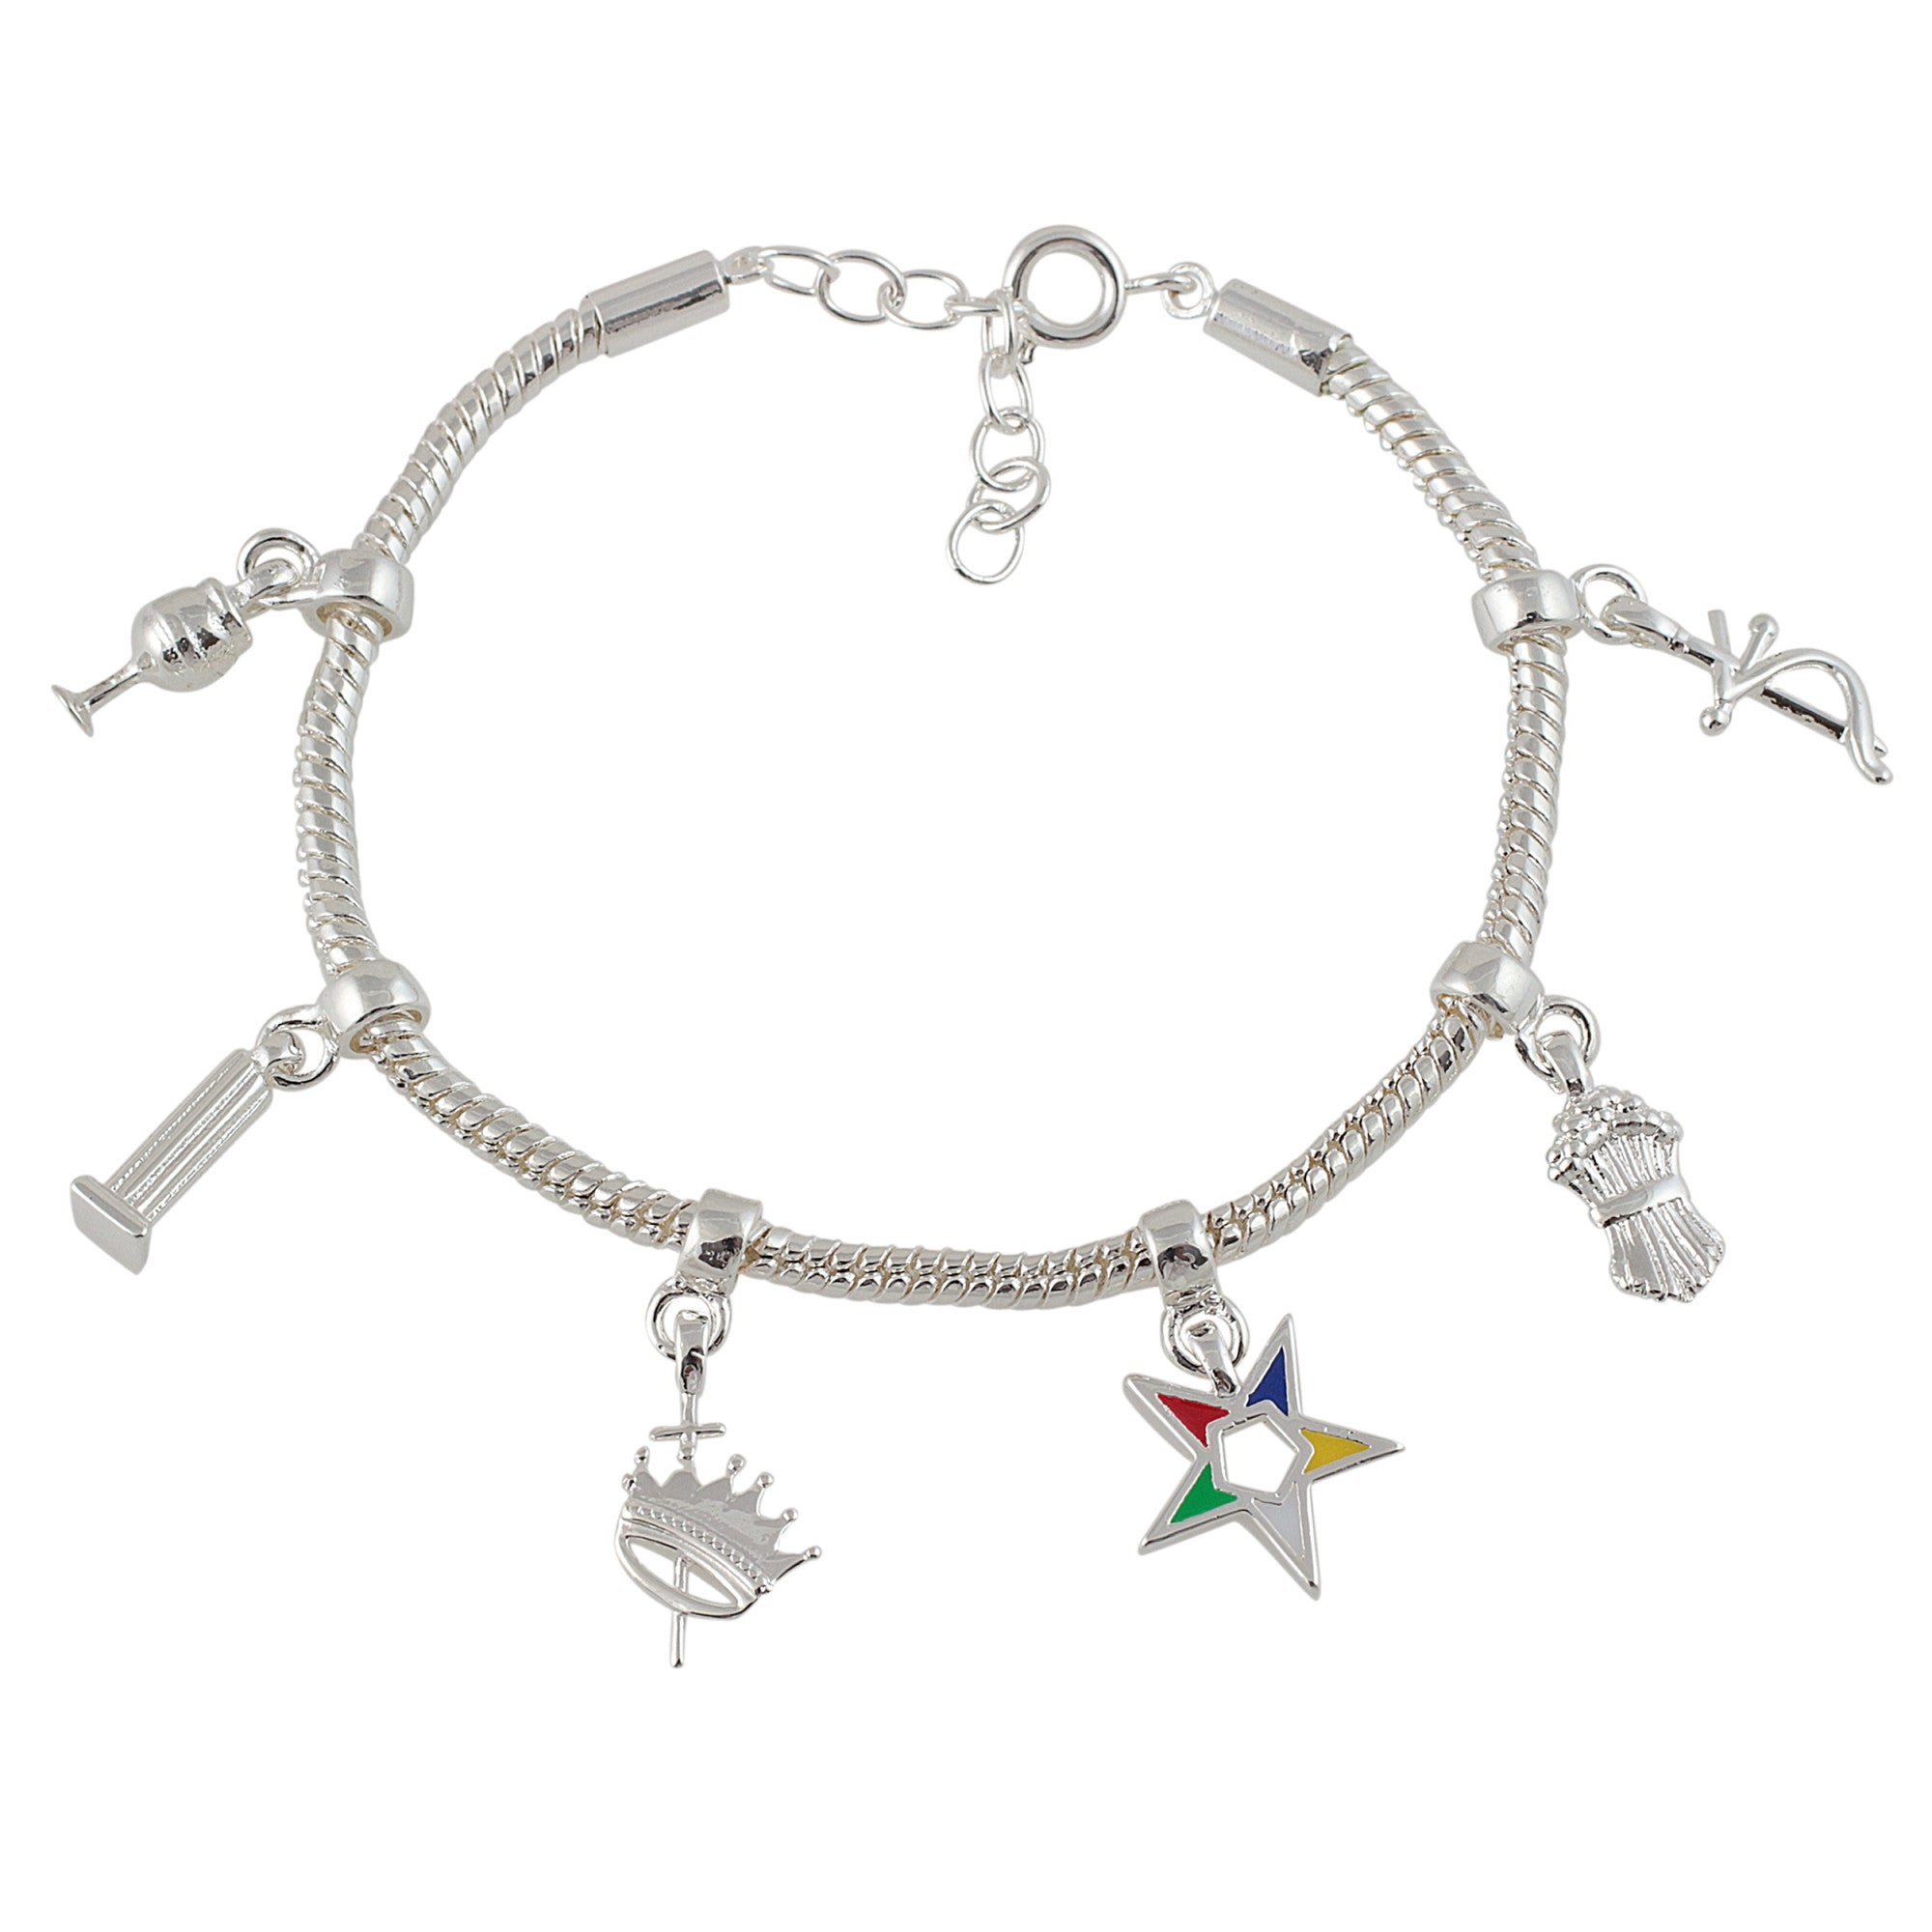 Order of the Eastern Star Silver Toned Adjustable Heroine Emblem Charm Bracelet